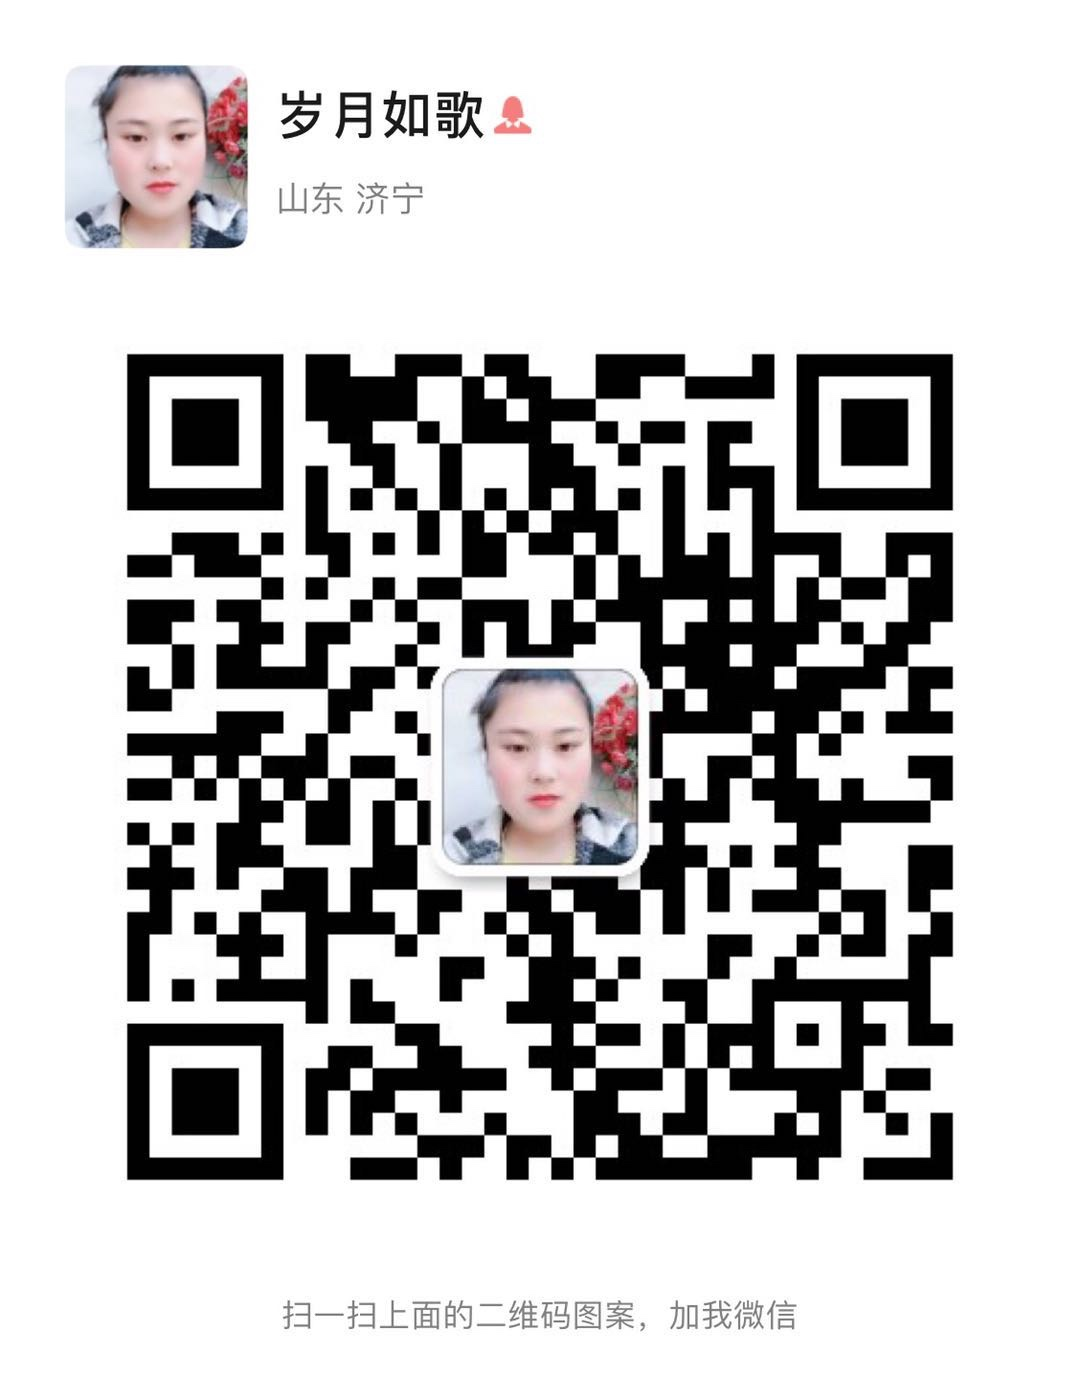 .\..\..\..\..\..\..\AppData\Local\Temp\WeChat Files\2e2b185a06eacd6b9dba7a8323d9eb26_.jpg